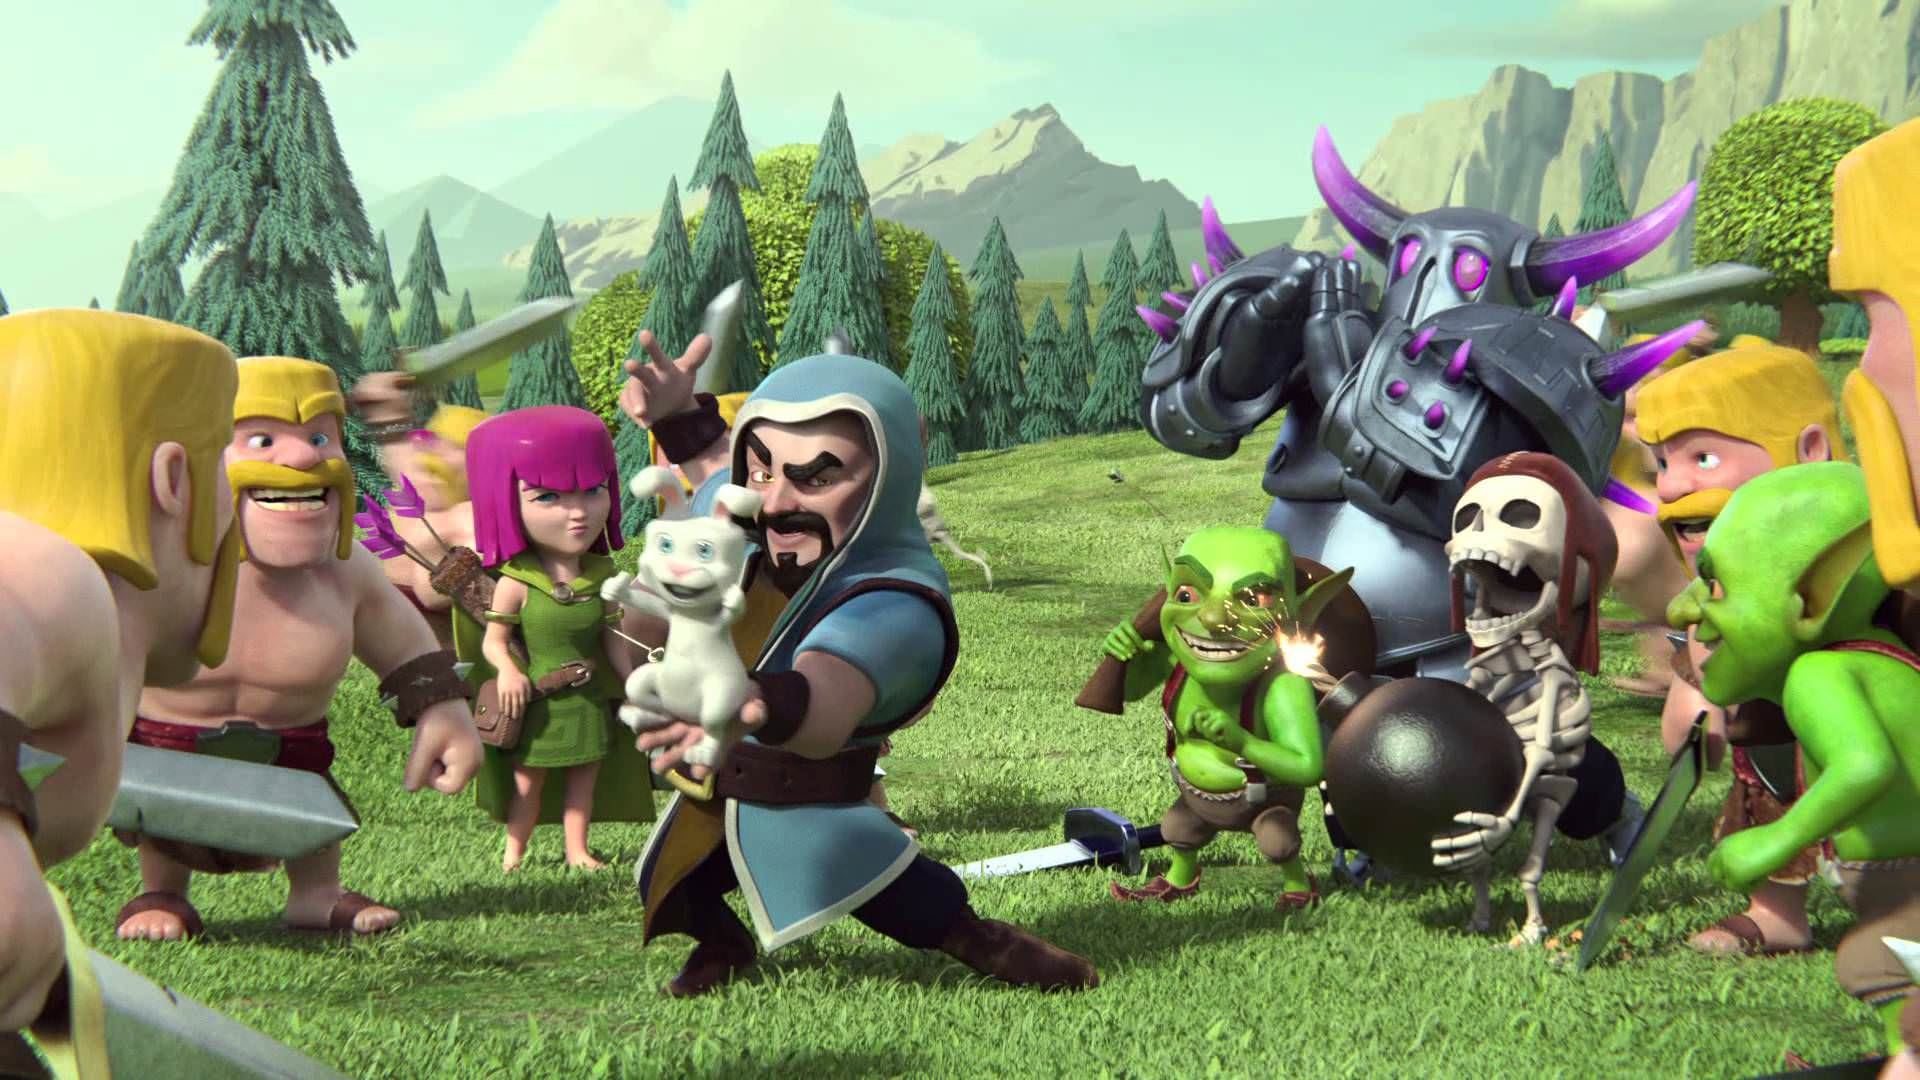 Funny-Clash-of-Clans-HD-Wallpaper